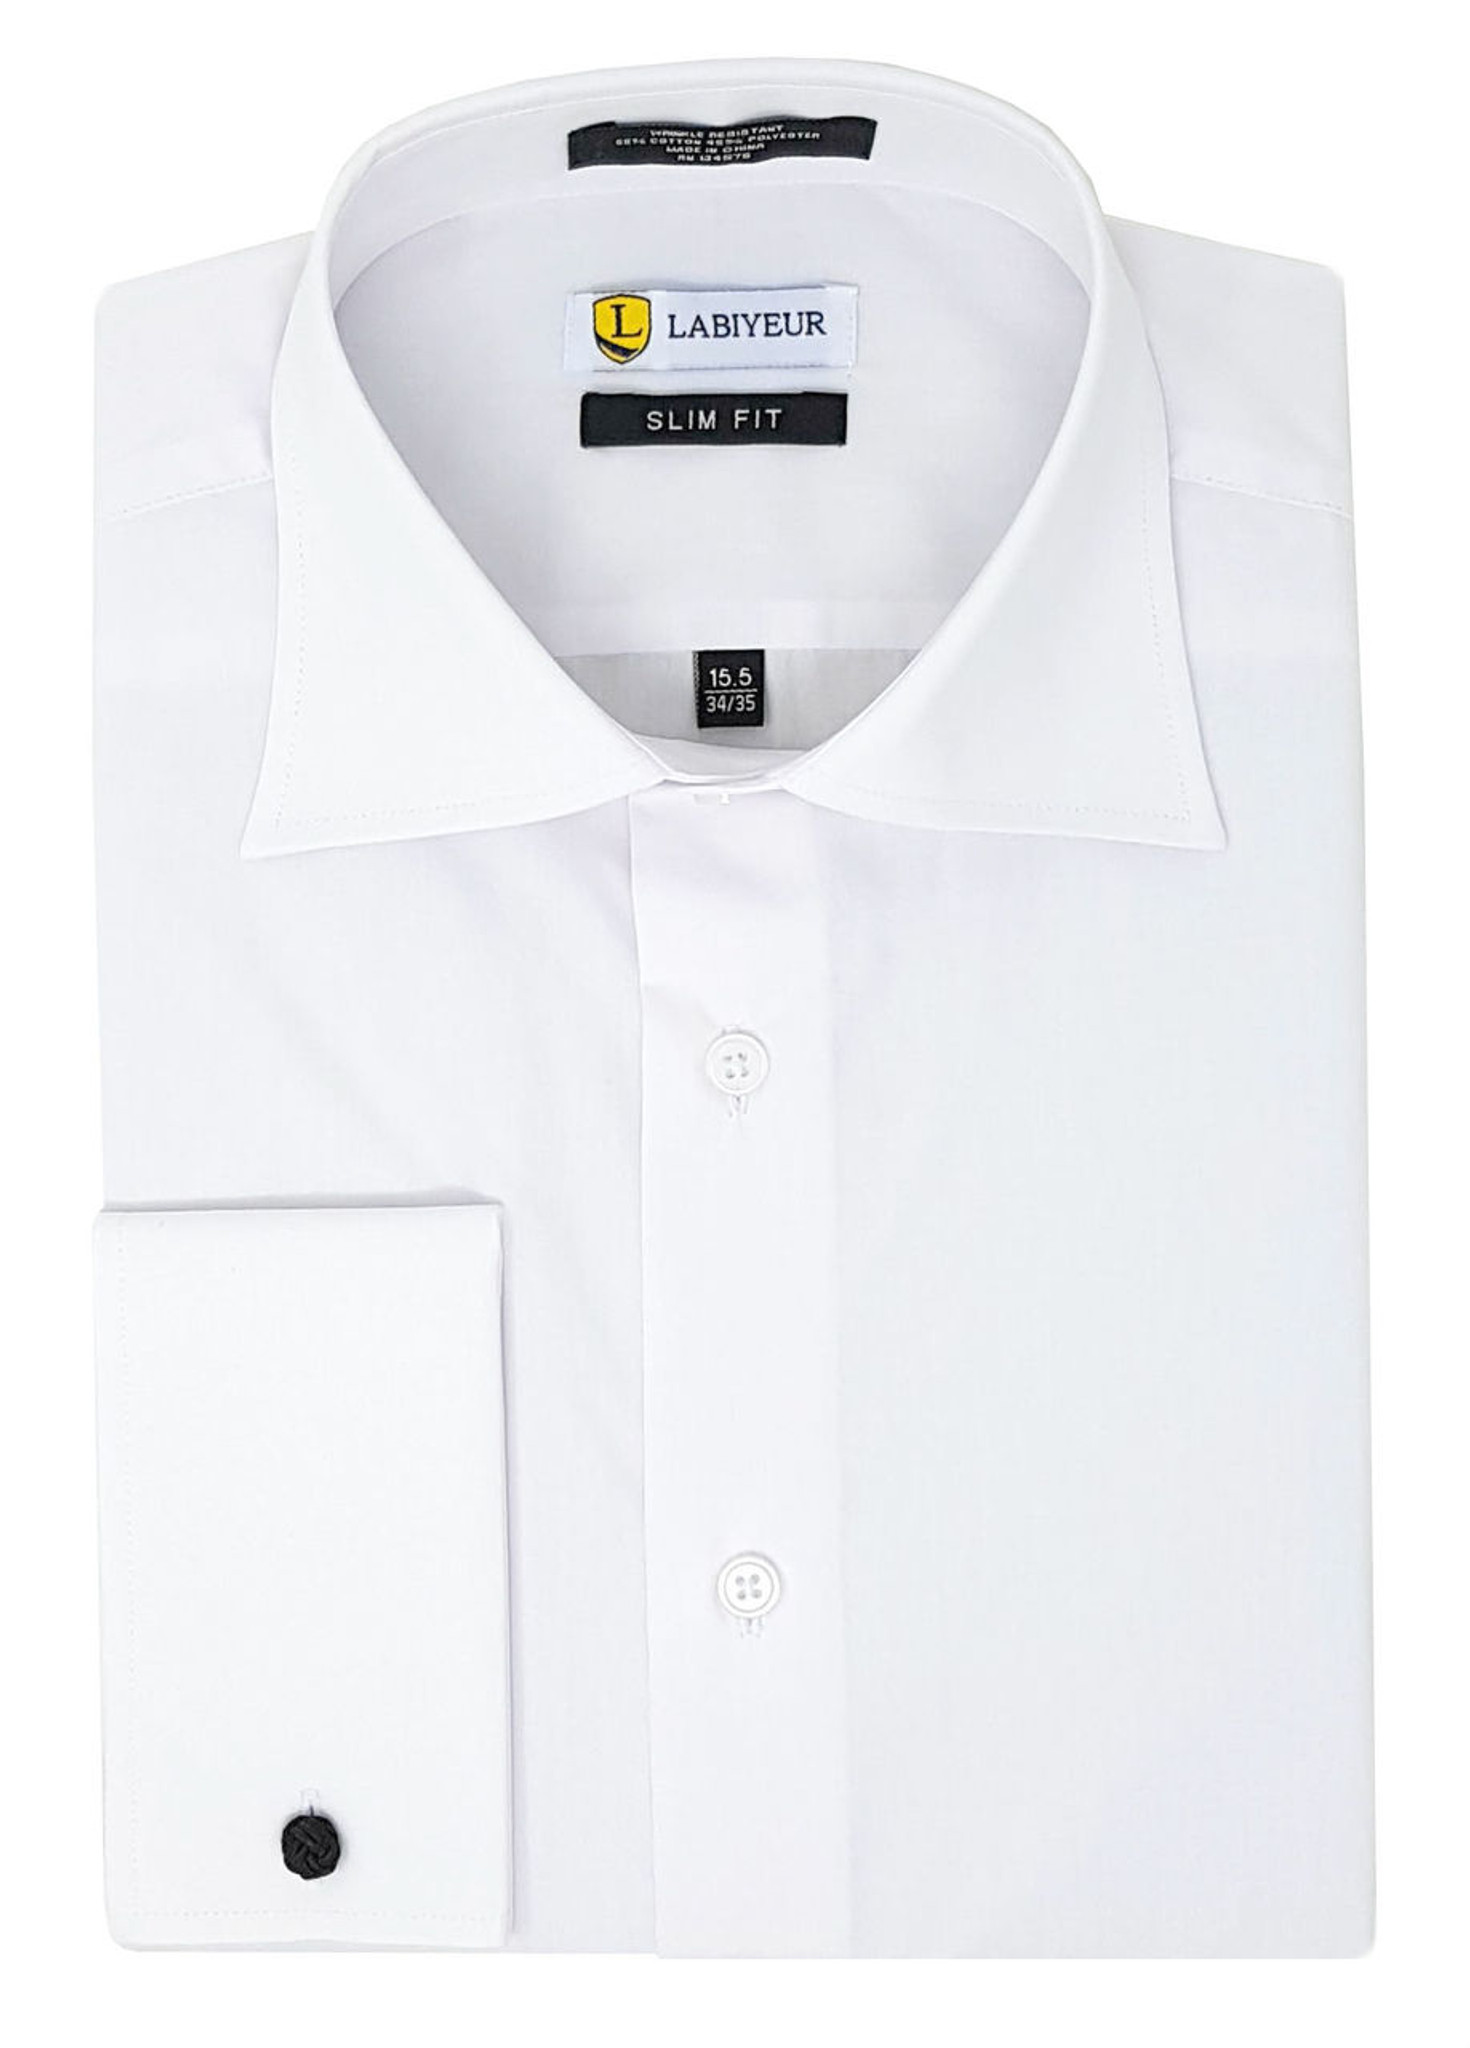 b9e10f012e5 ... French Cuff Poplin Cotton Blend Solid Dress Shirt White Click to  enlarge ...